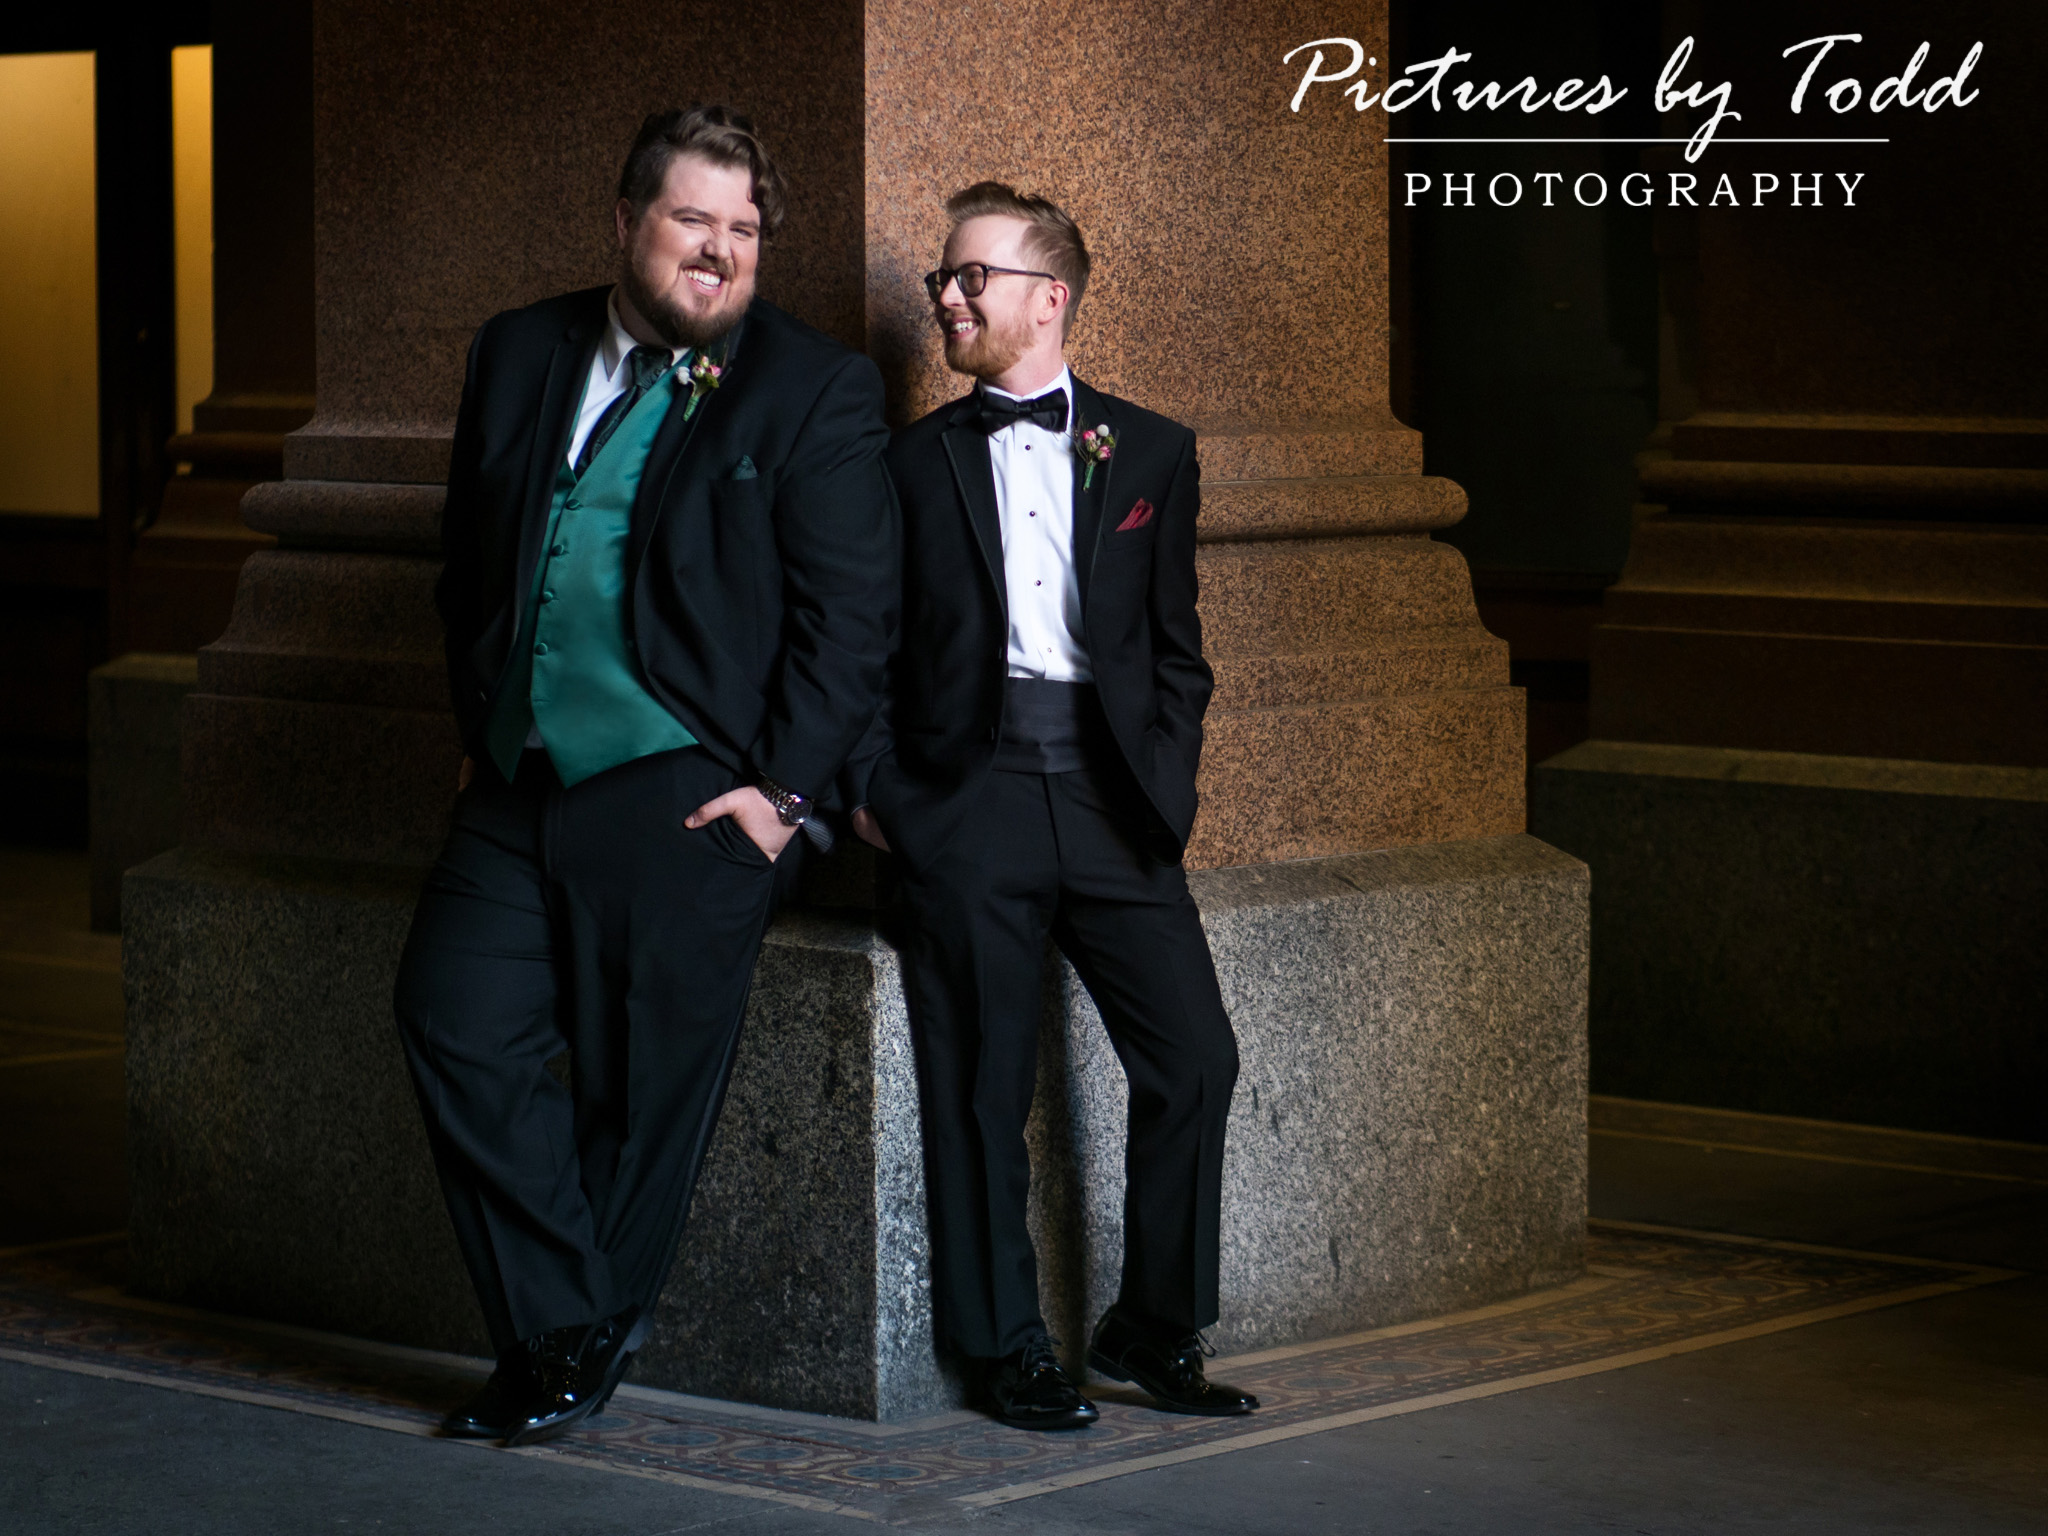 Gay-Wedding-Pictures-By-Todd-Photography-City-Hall-Center-City-Couple-Love-Portrait-Smile